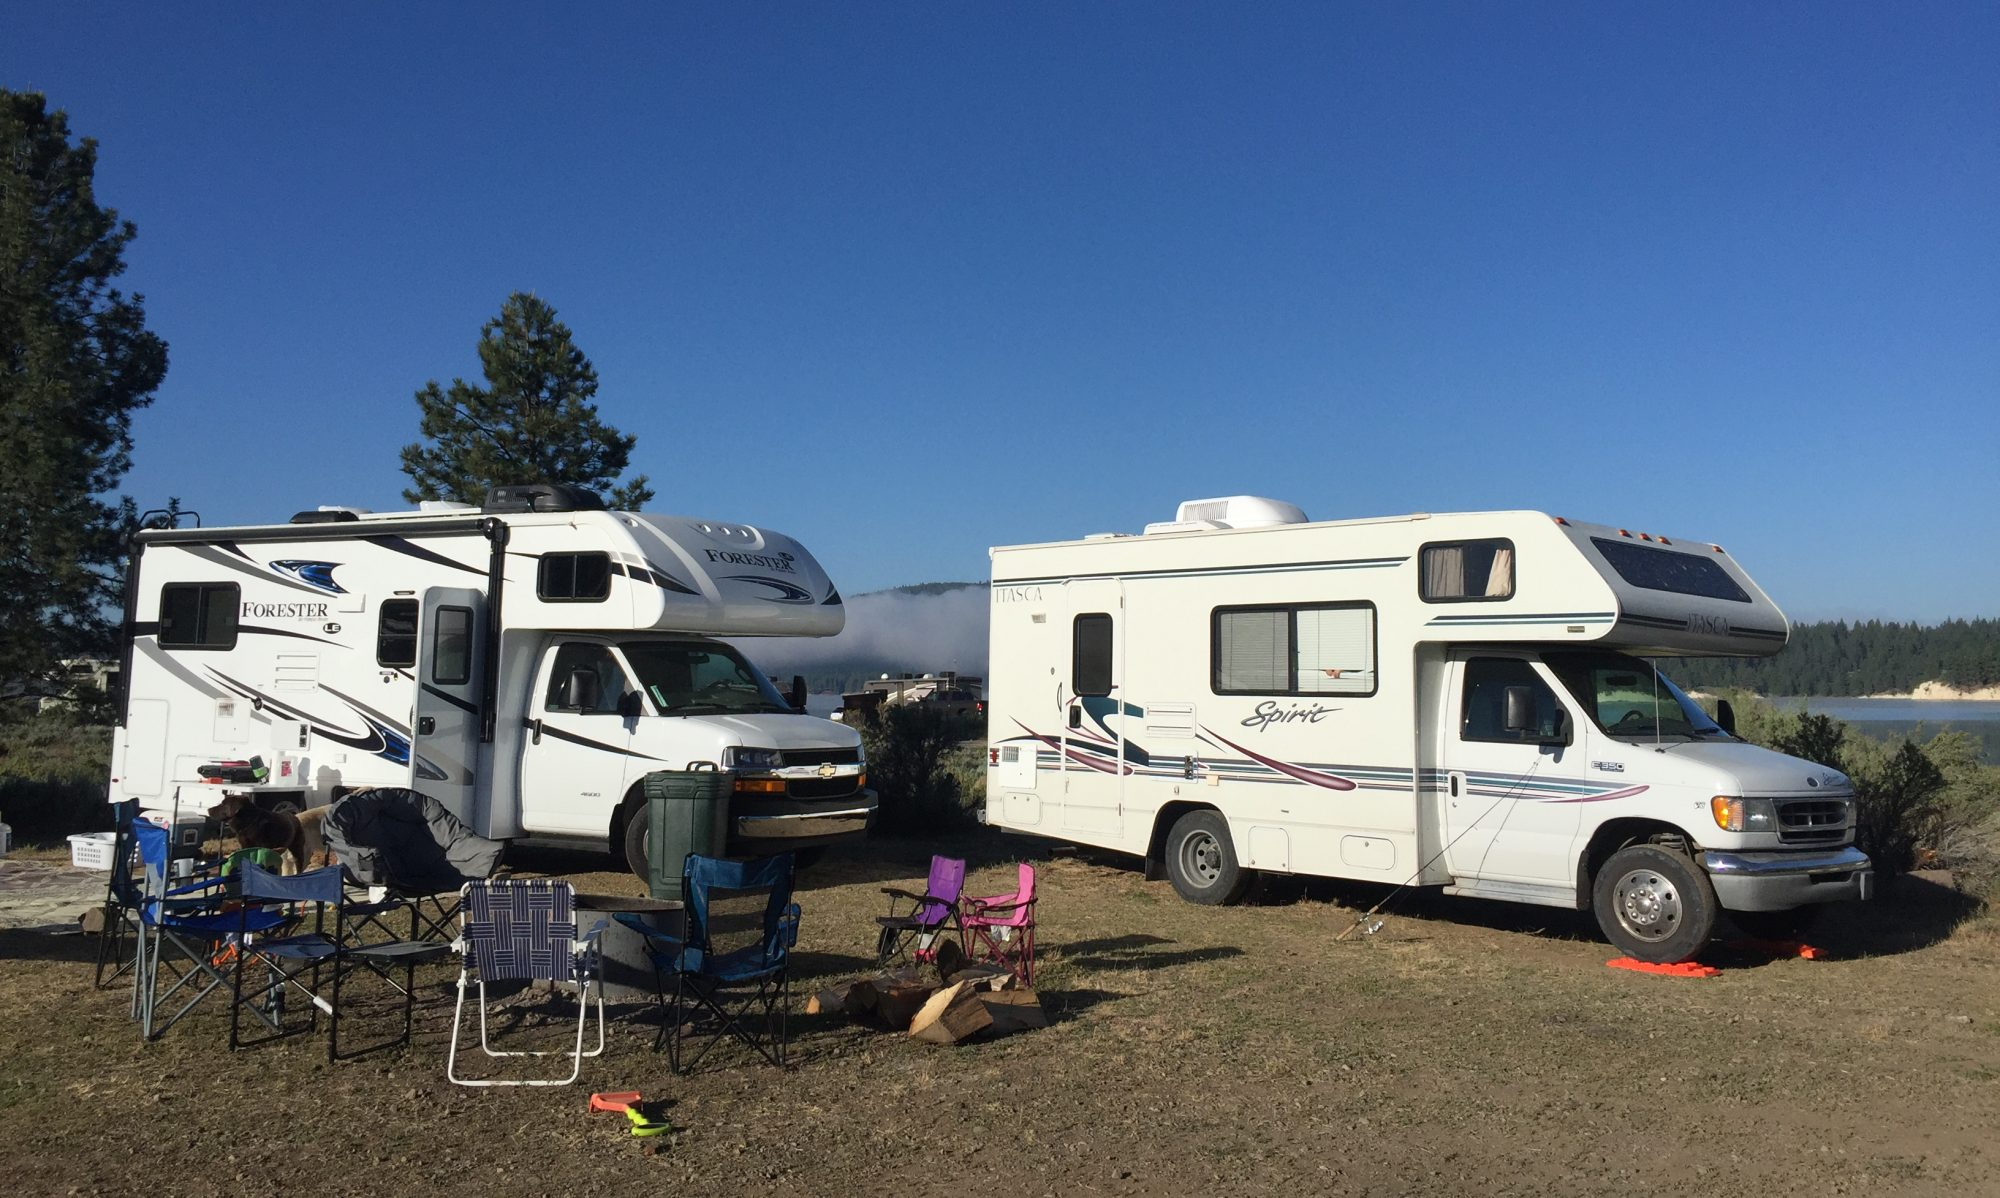 Where to dump tanks and get LP gas near Truckee? - Truckee RV